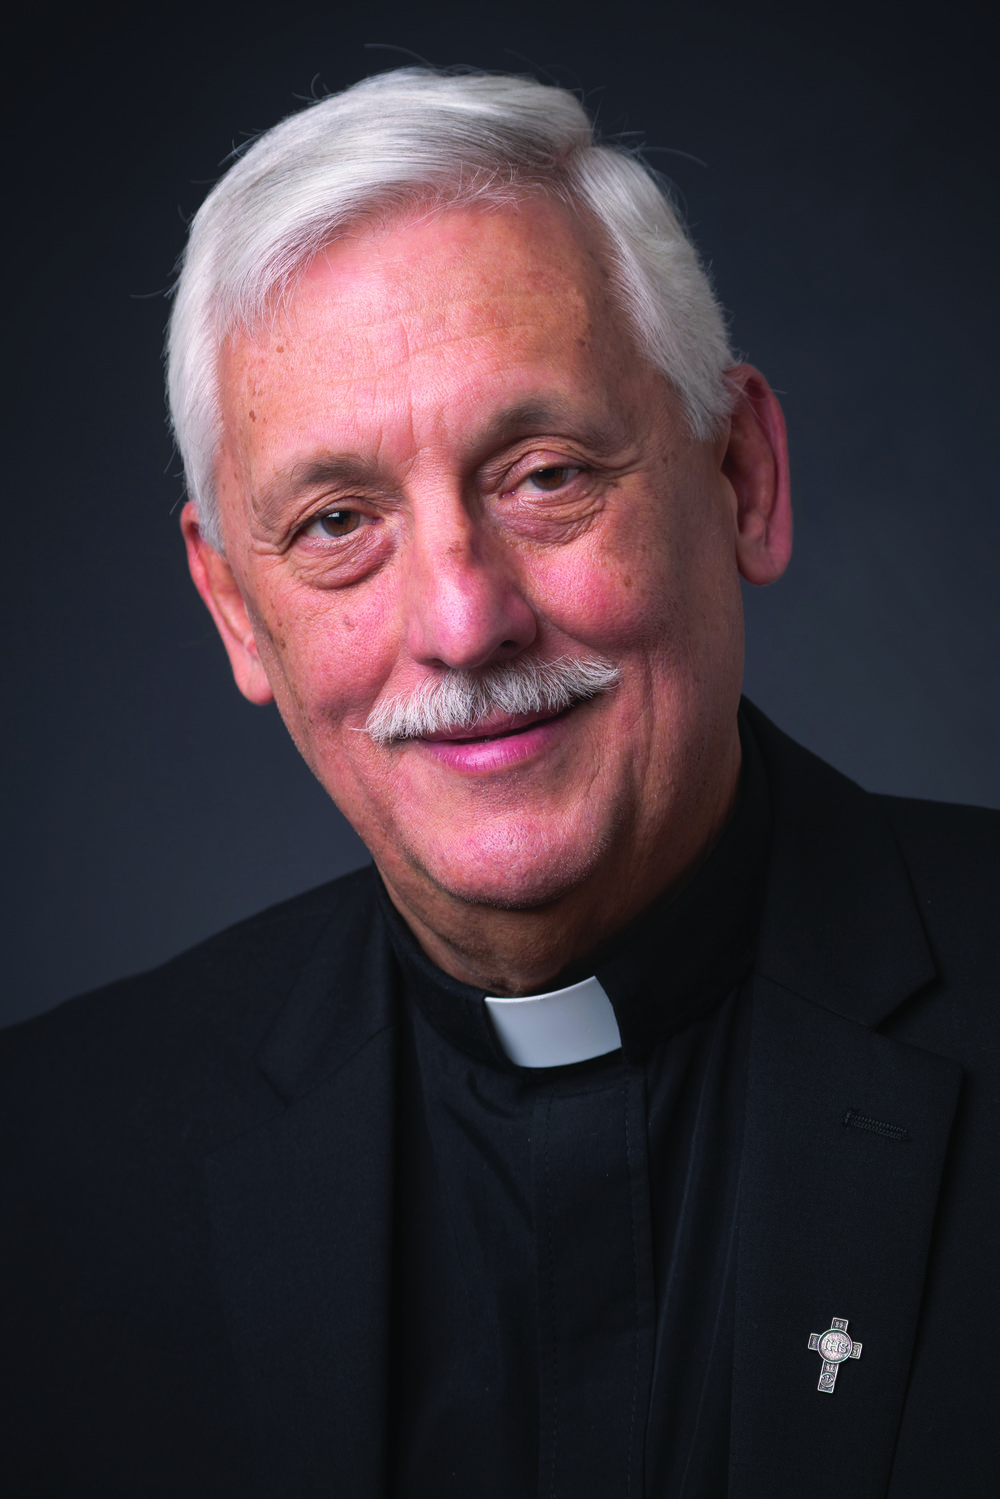 Father Arturo Sousa, SJ, the New Father General of the Society of Jesus